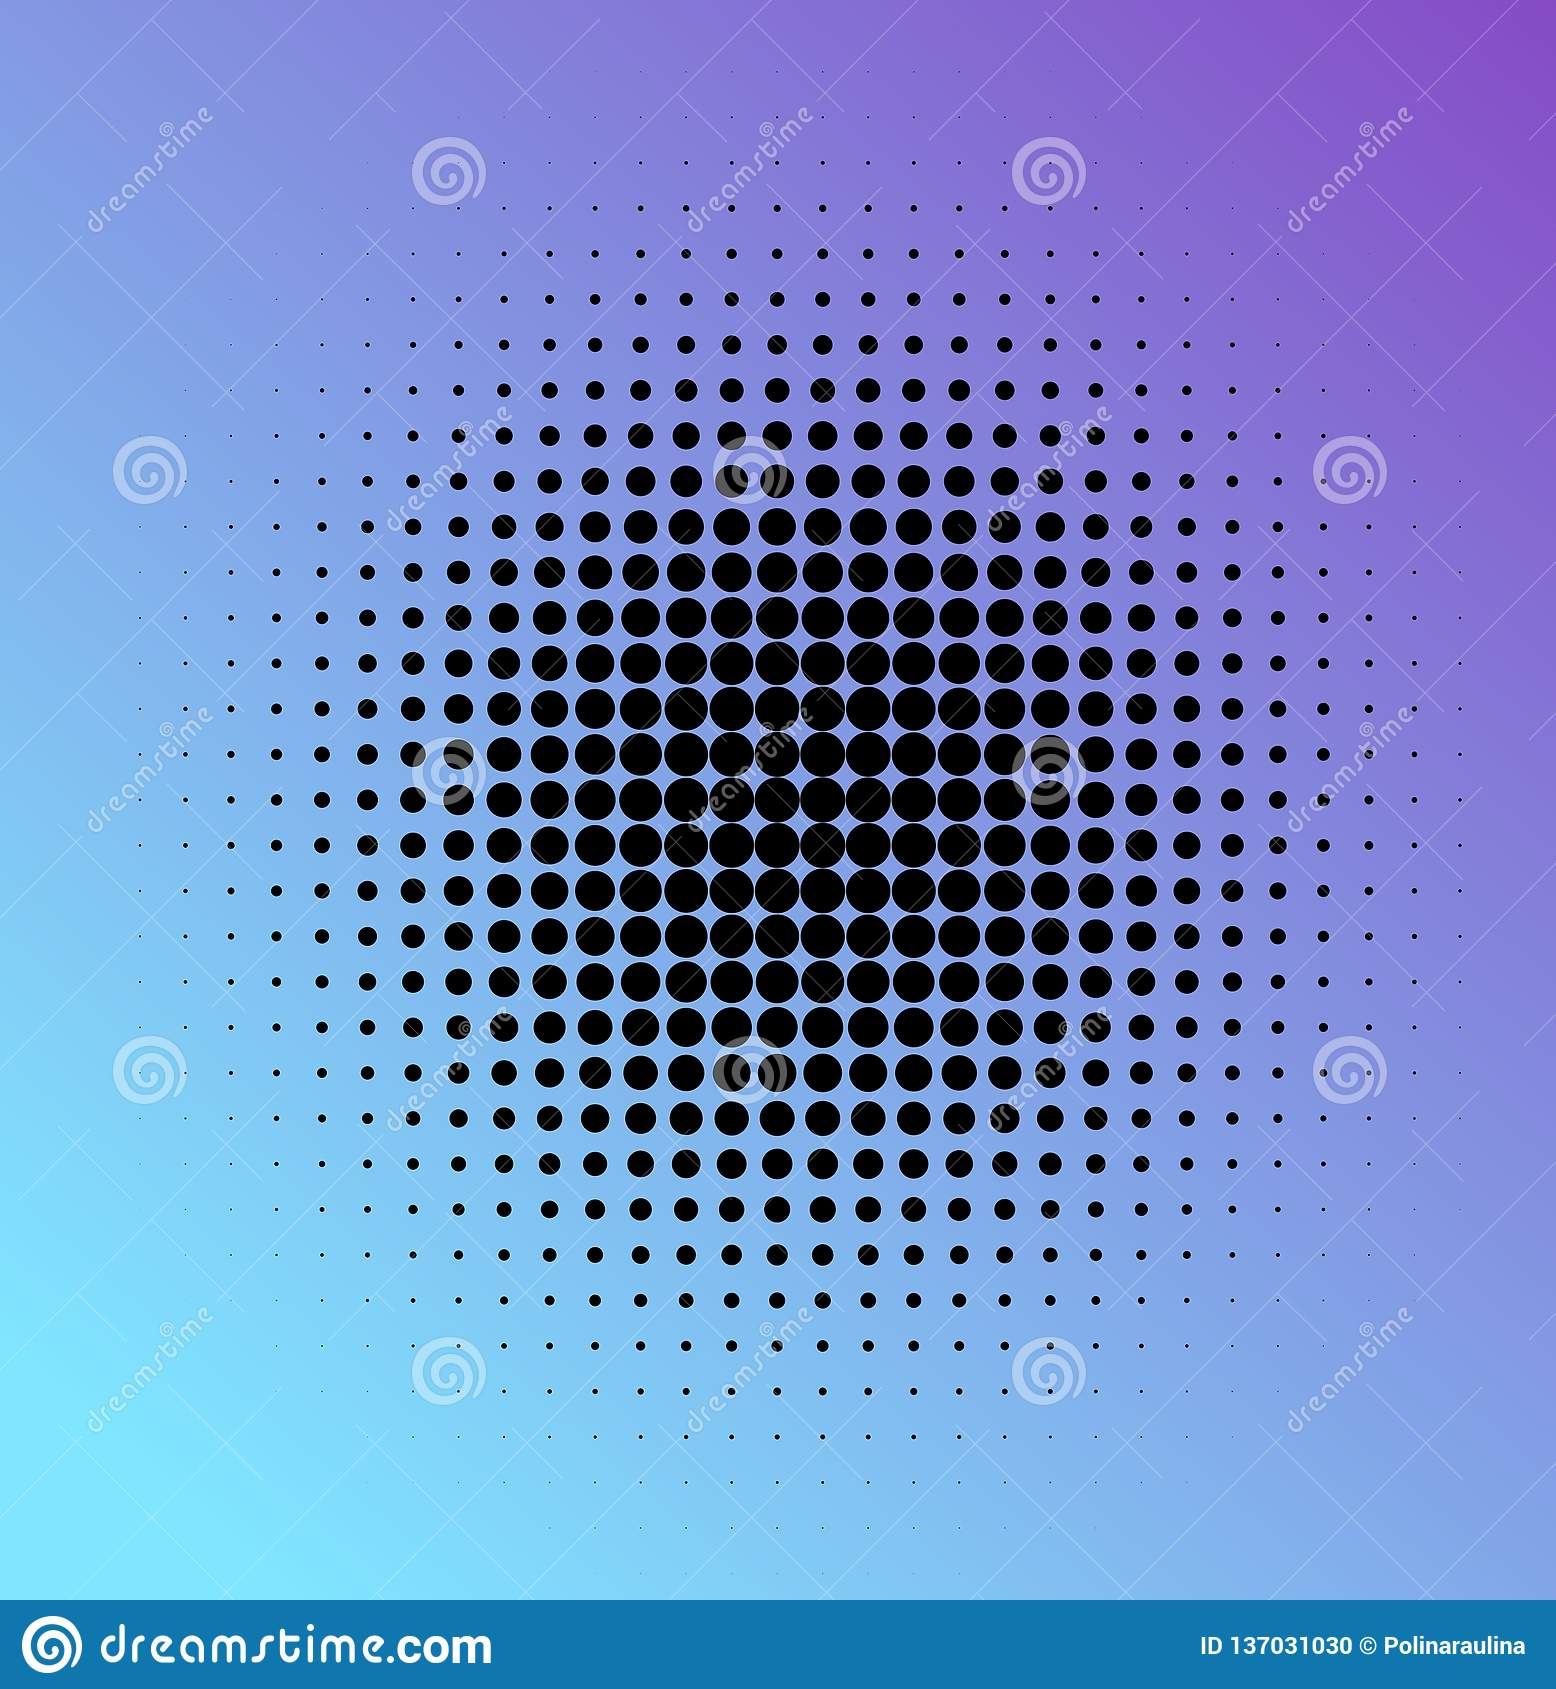 Halftone dots in circle.